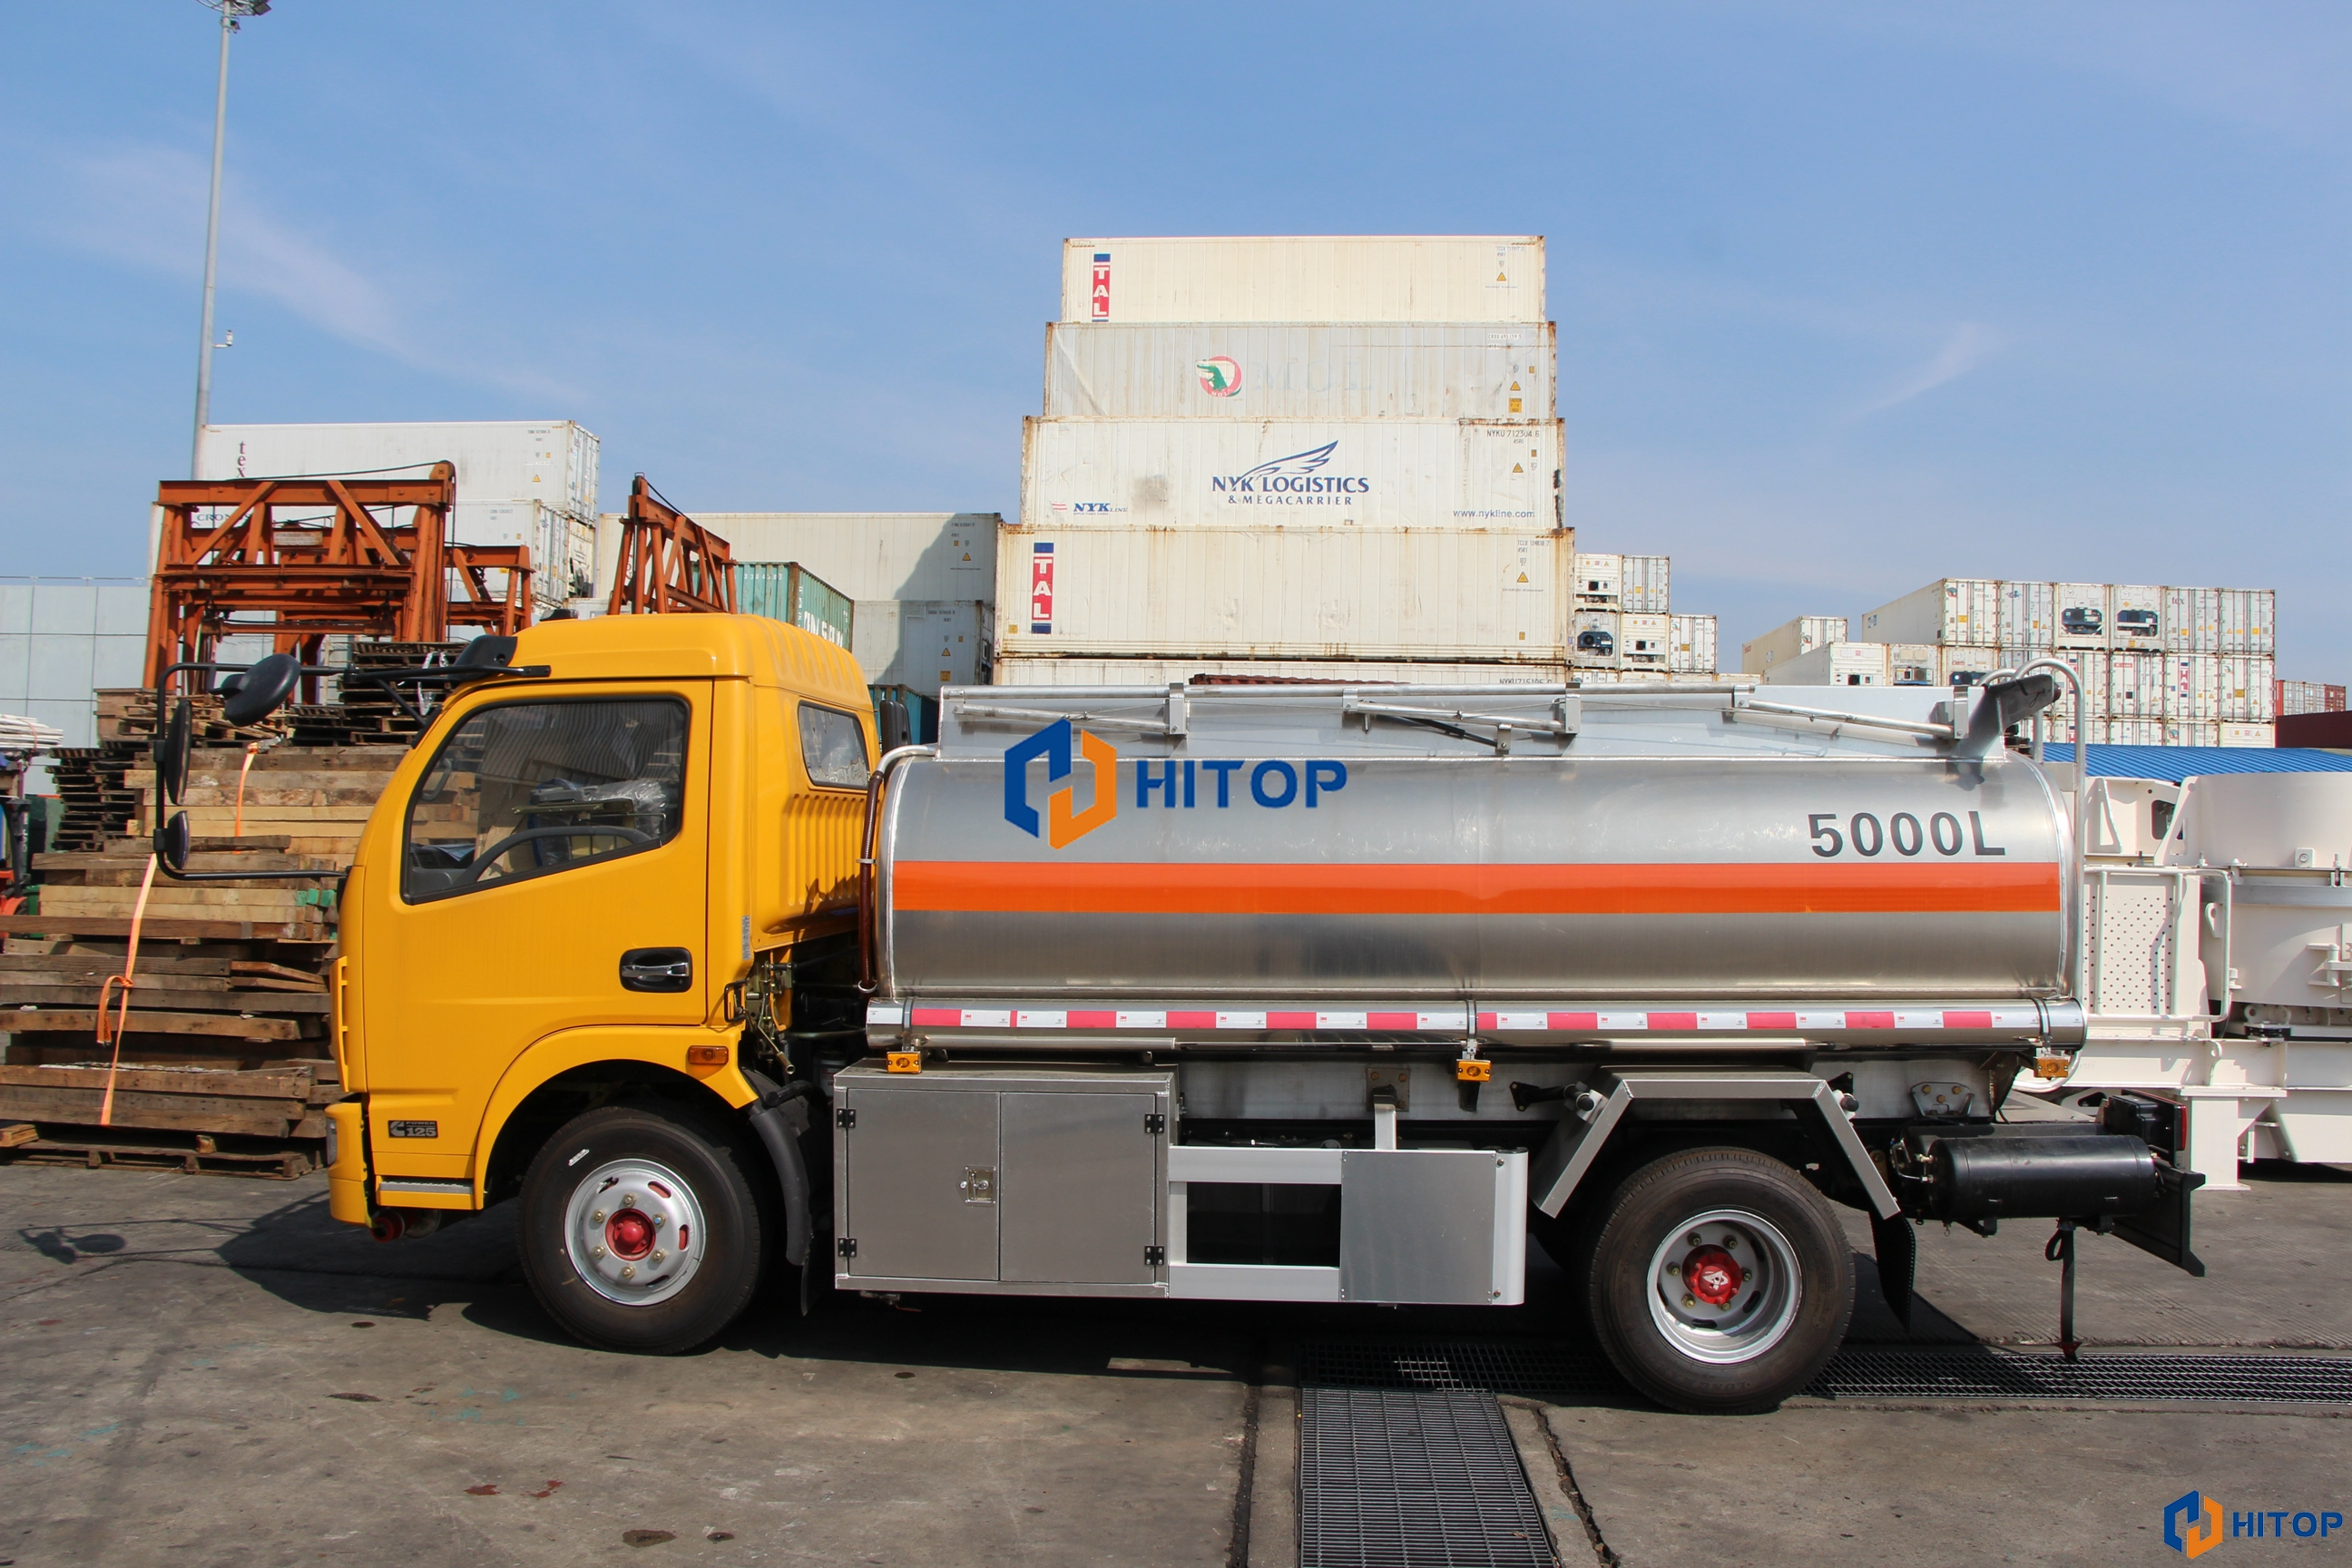 One Unit 5000L Oil Tanker with Dongfeng 4x2 chassis was exported to Cook Island